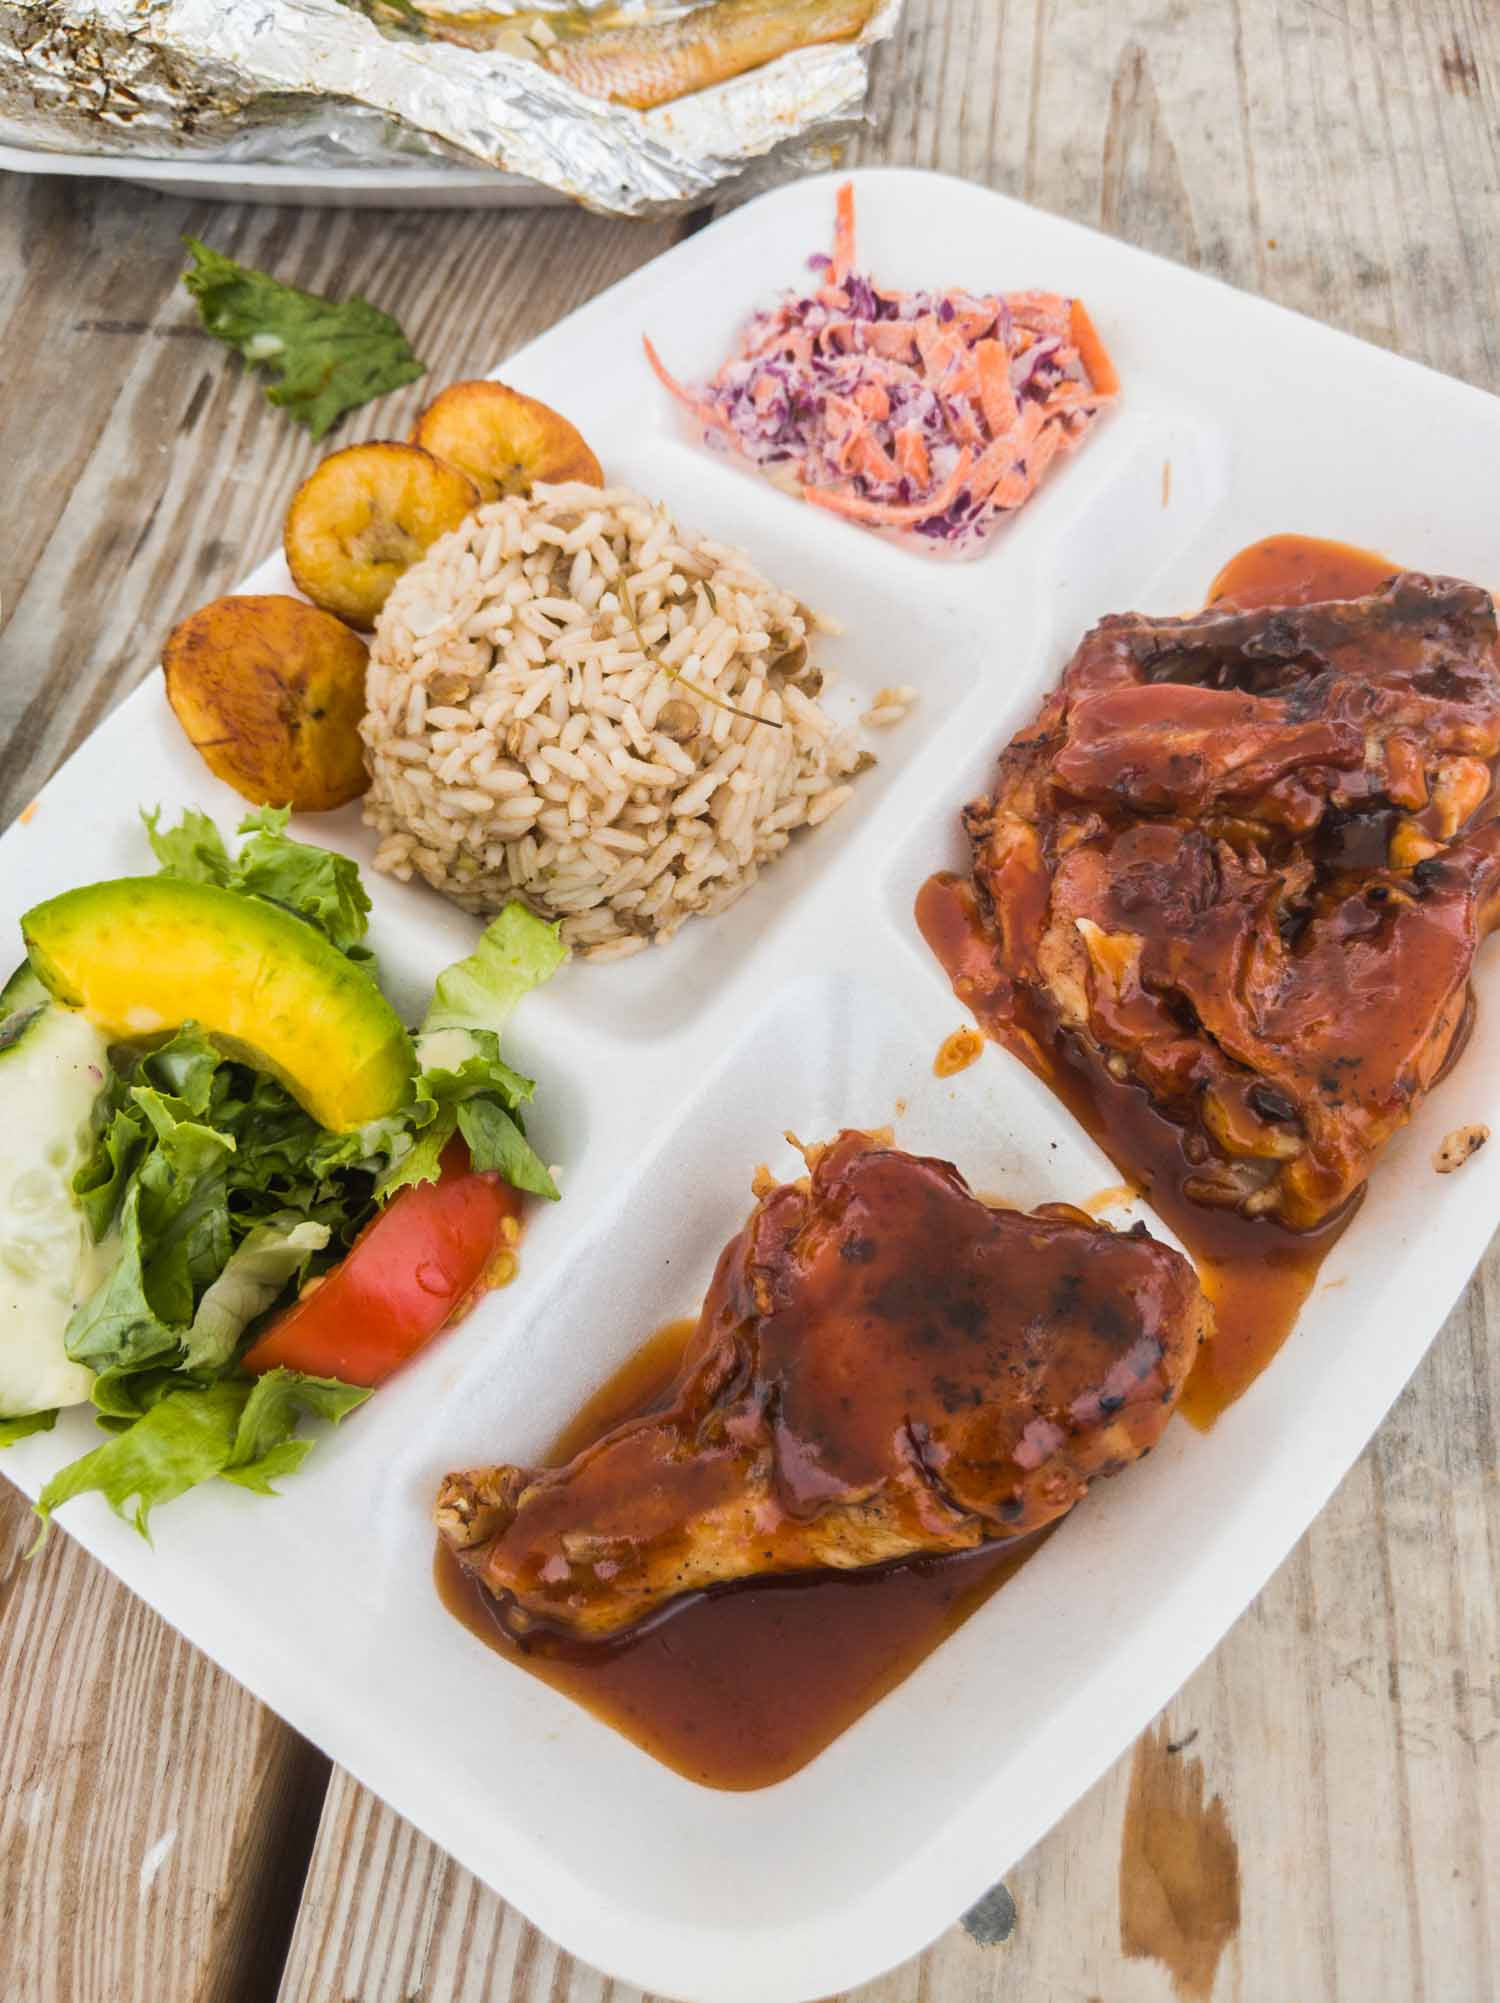 Barbecue chicken from Sunshine Shack in Anguilla